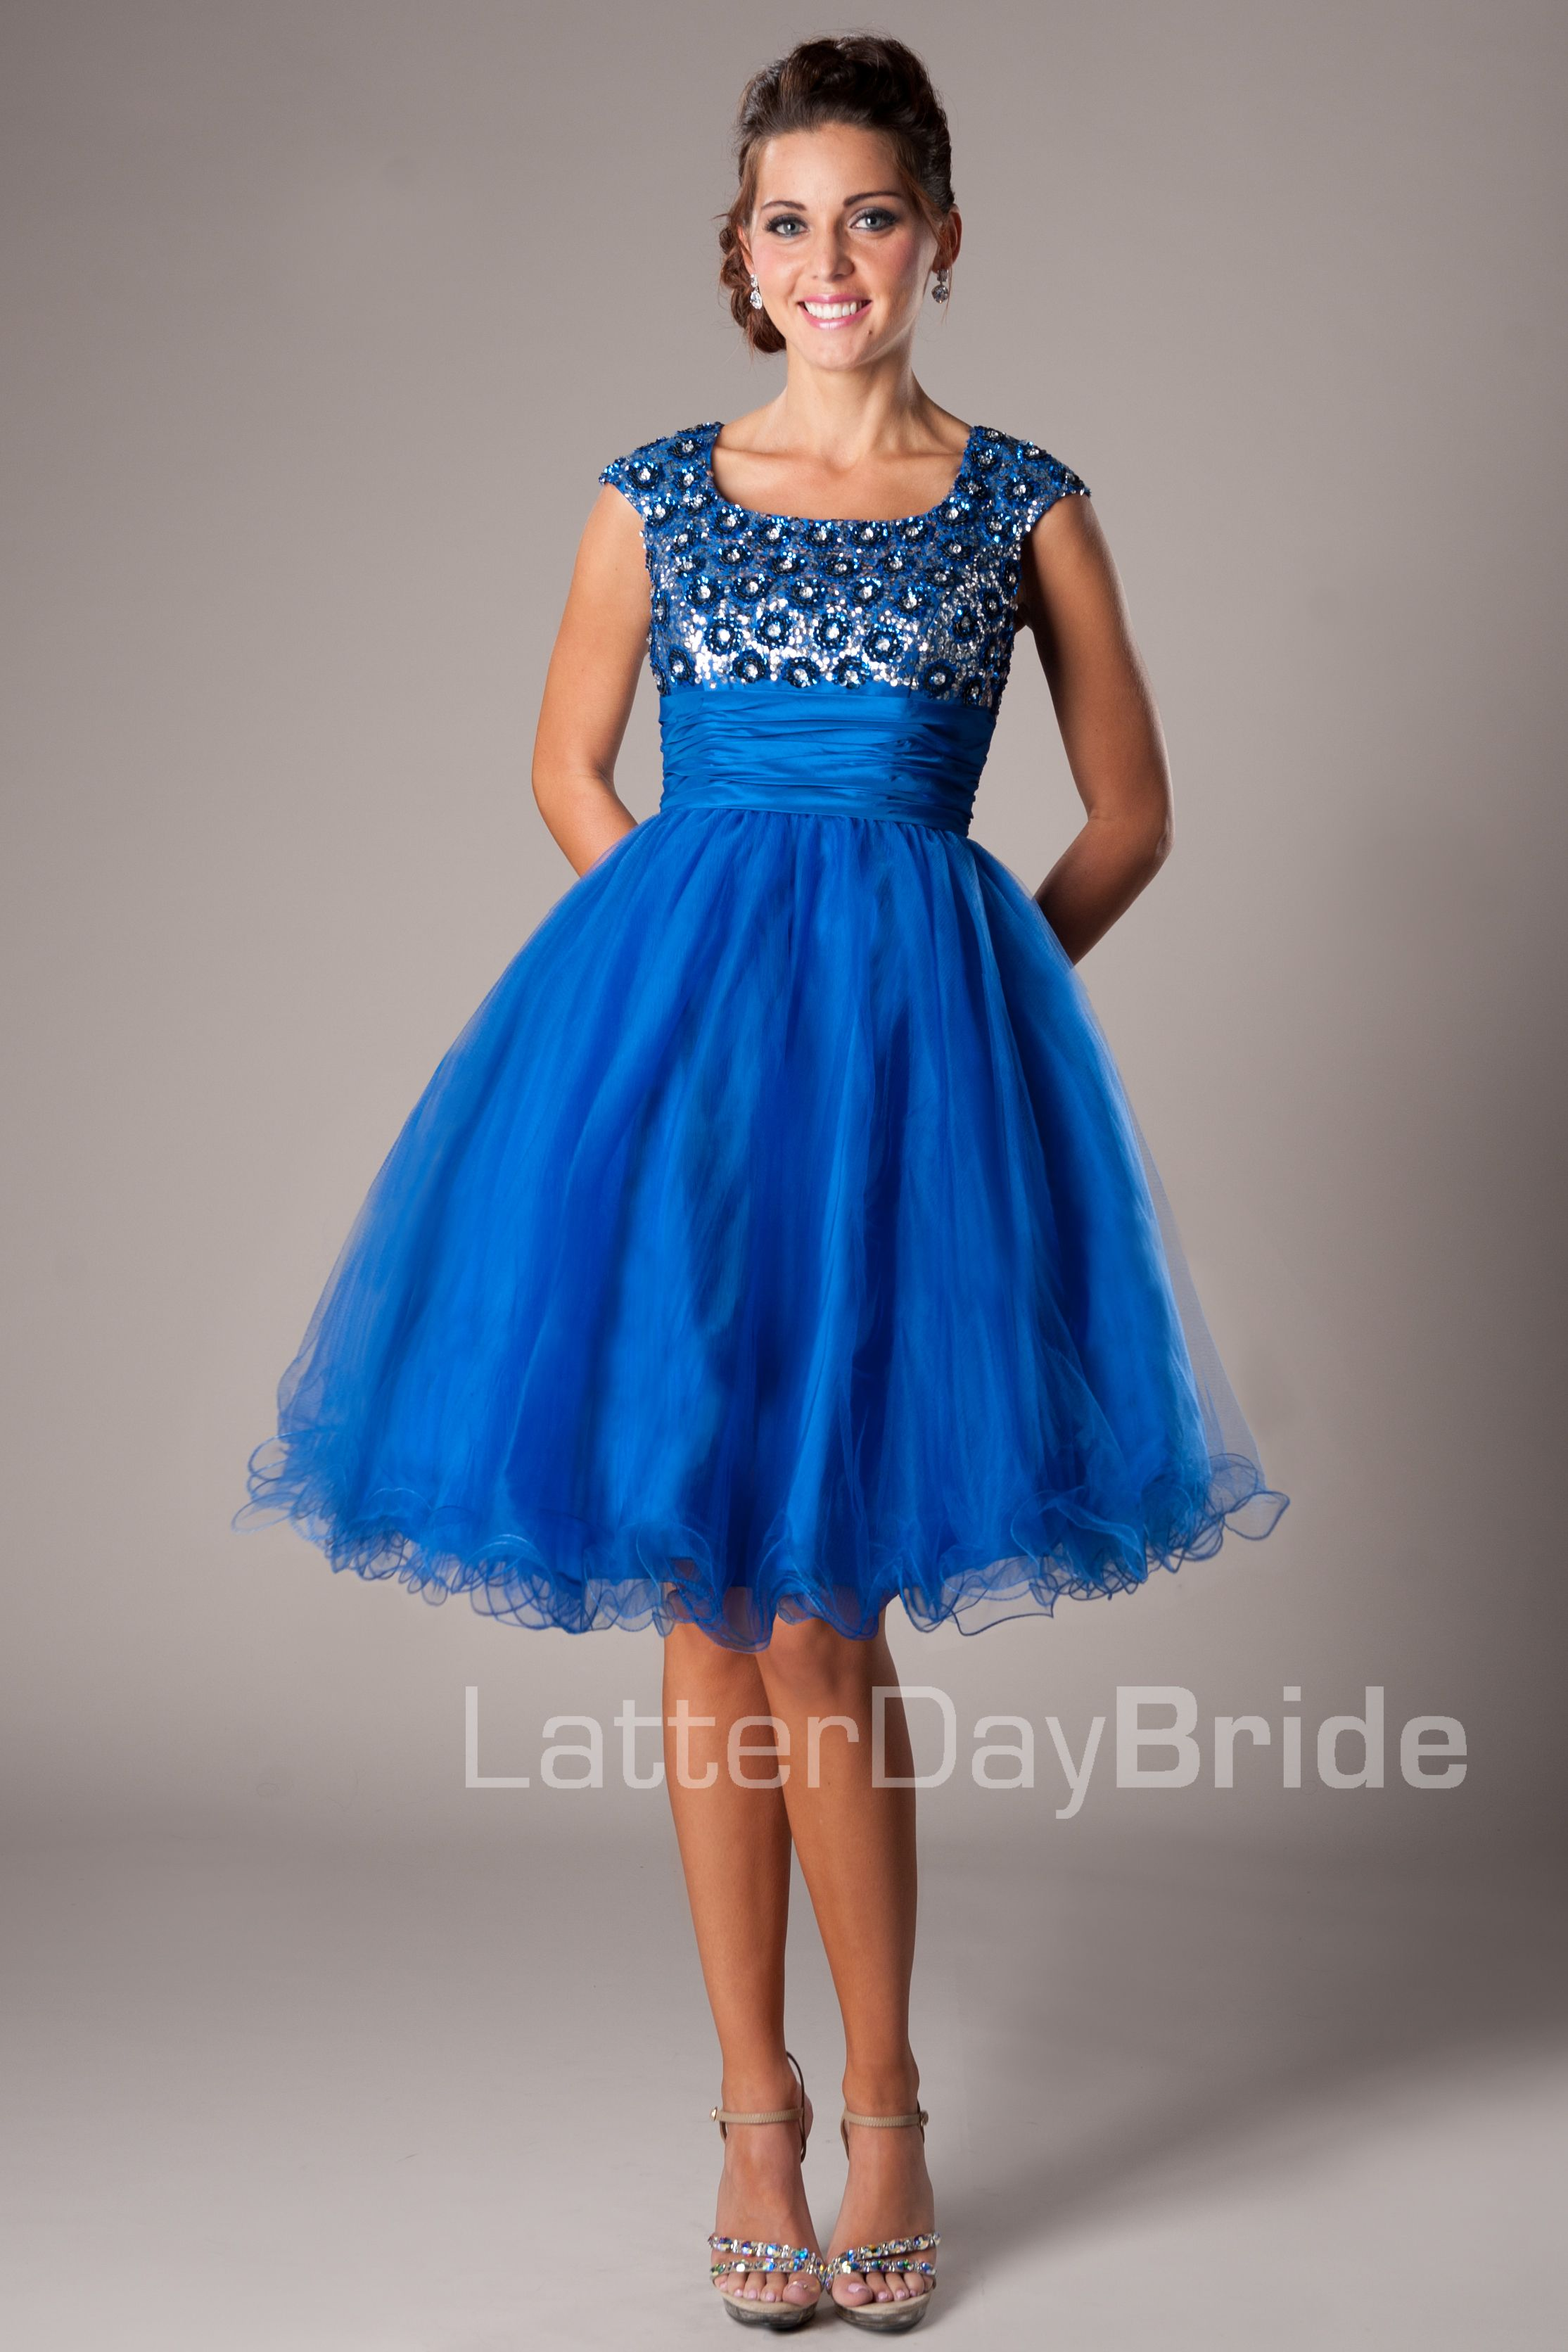 Avalynn -Modest Mormon LDS Prom Dress | Modest Prom Dresses ...